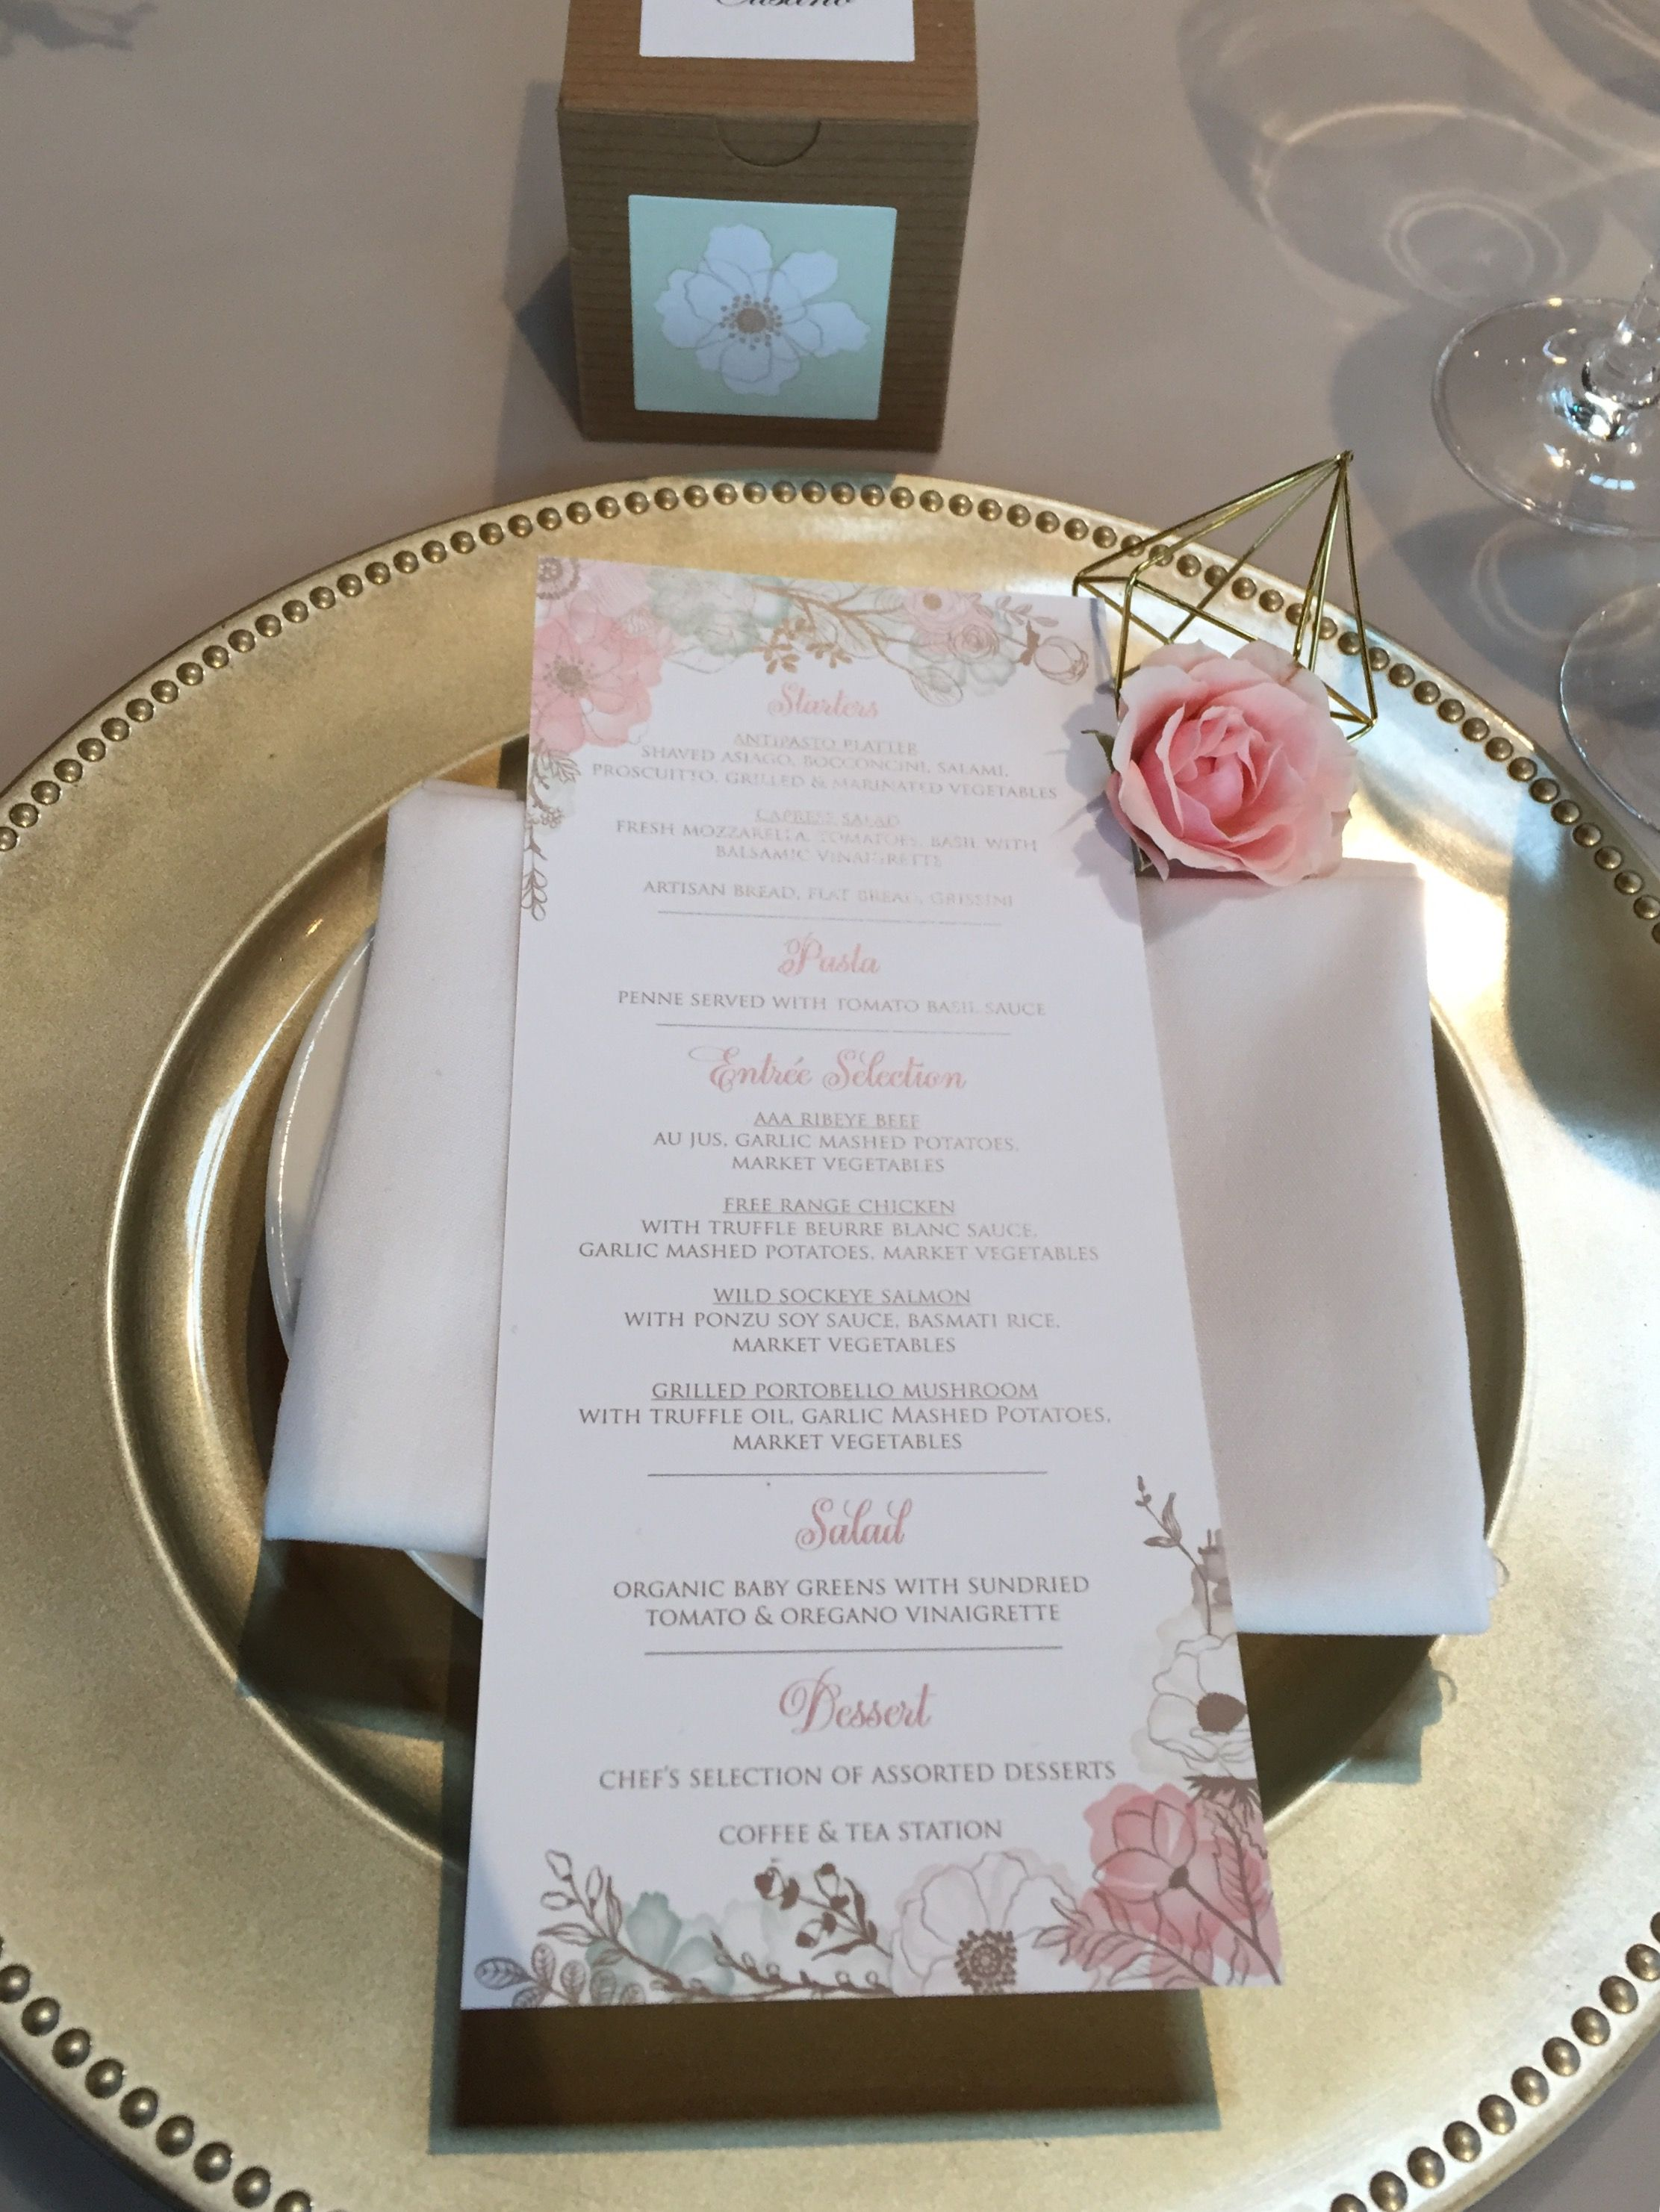 Wedding stationery by Rintzy Lee Designs. Photo credit to L\'estelle ...